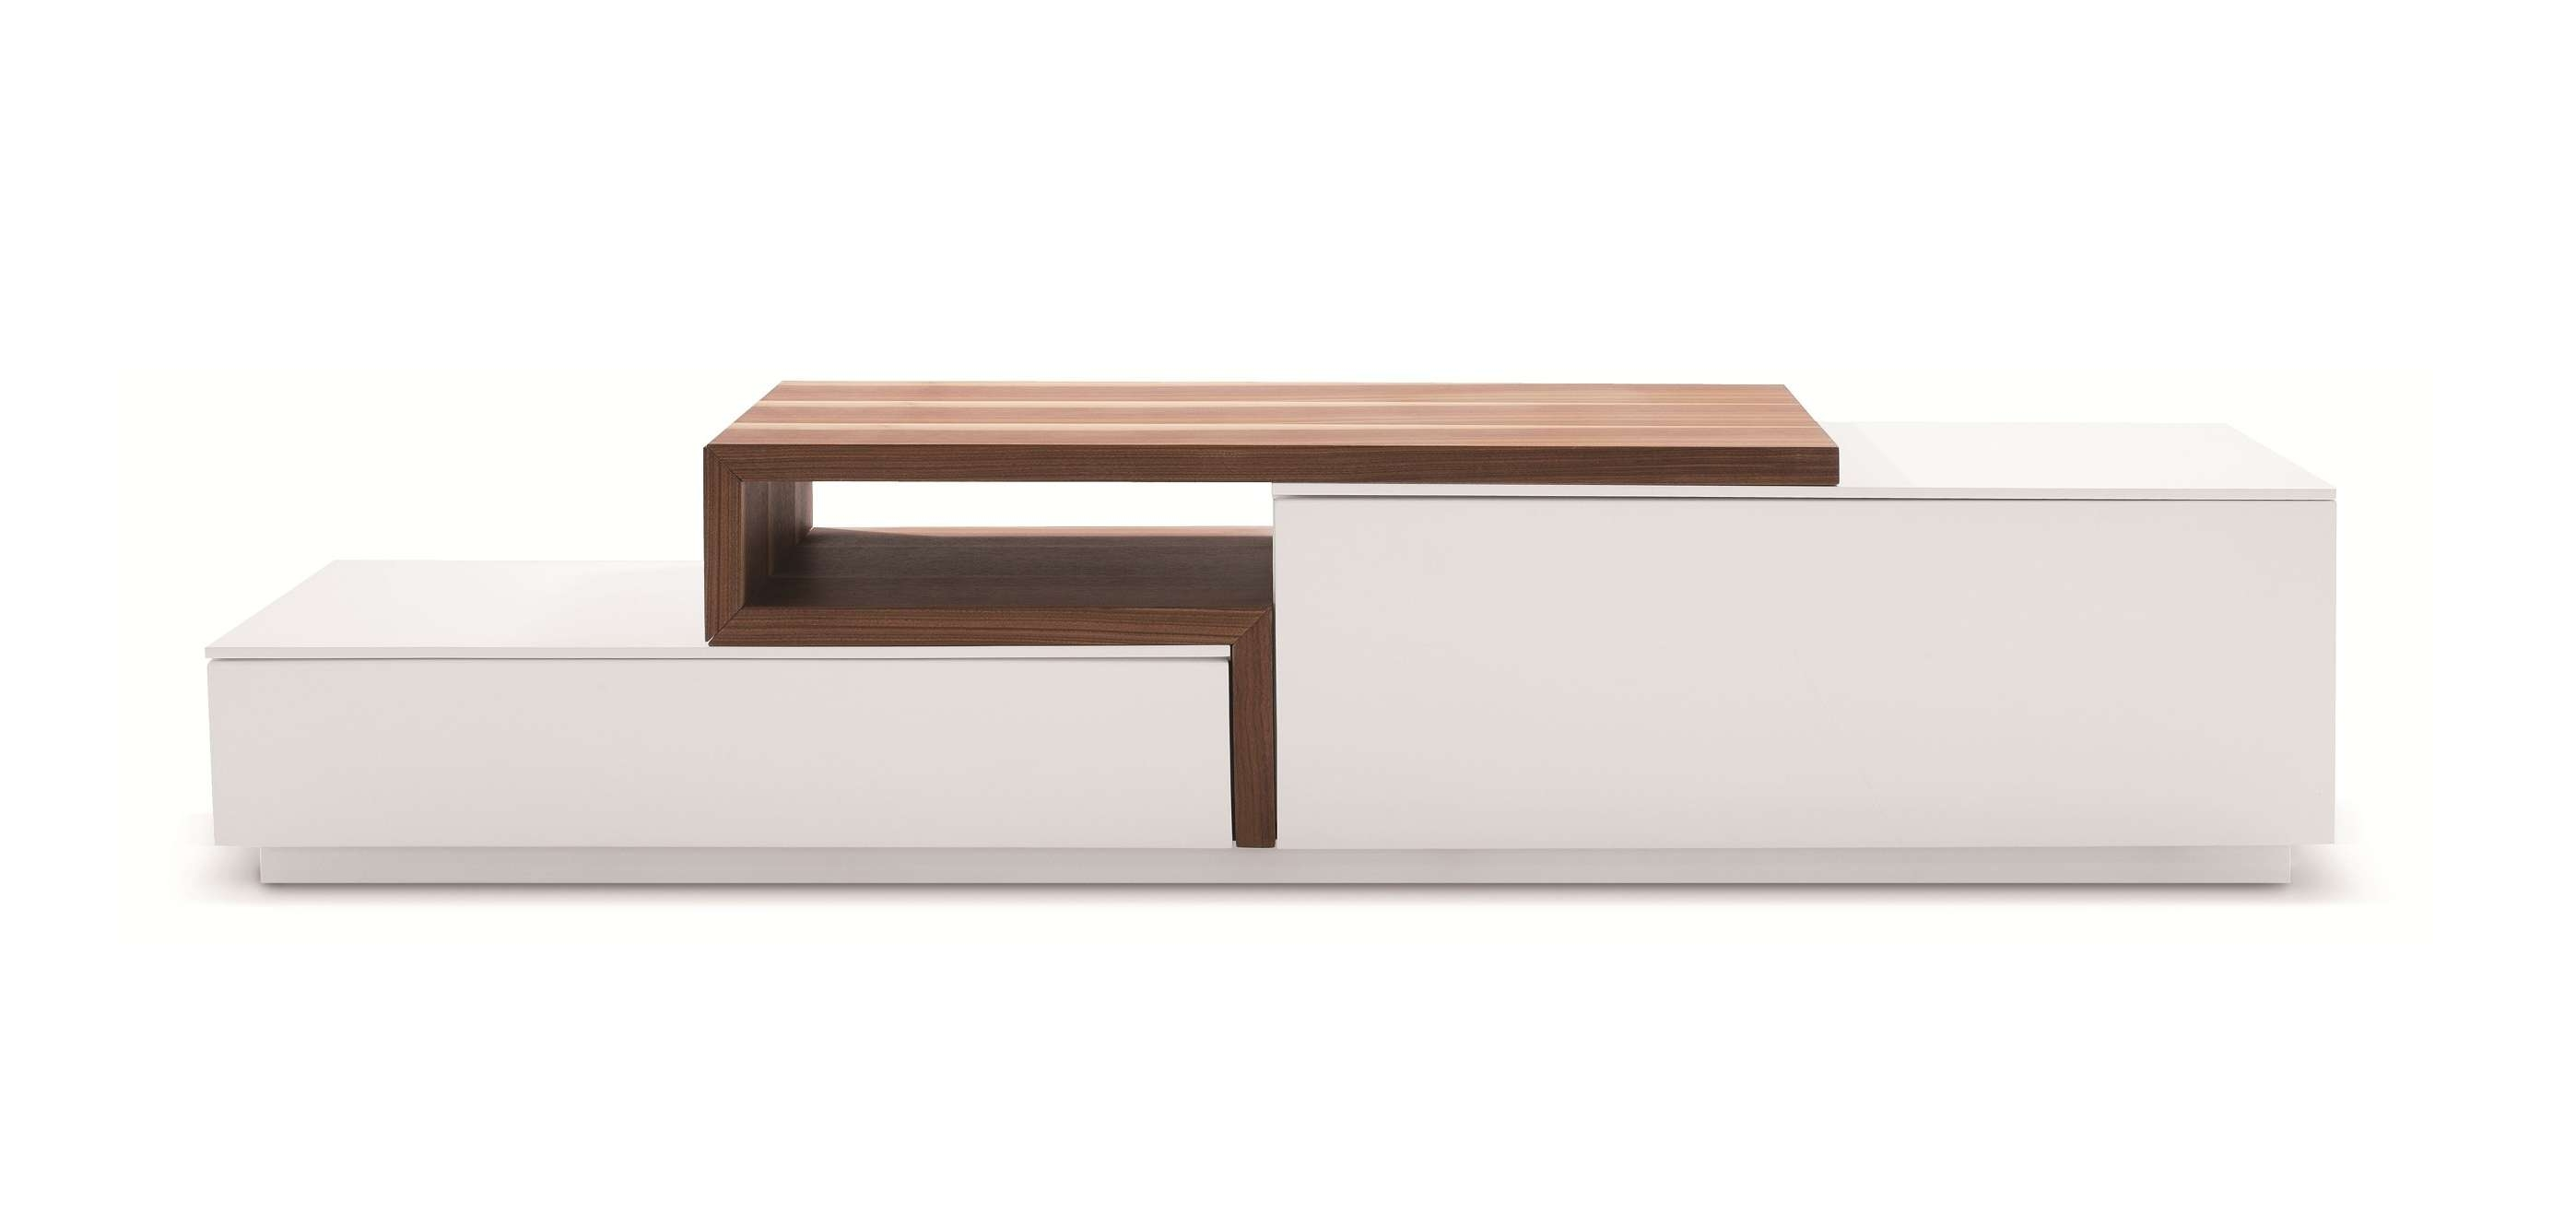 Tv045 Modern Tv Stand Pertaining To Modern Wooden Tv Stands (View 8 of 15)